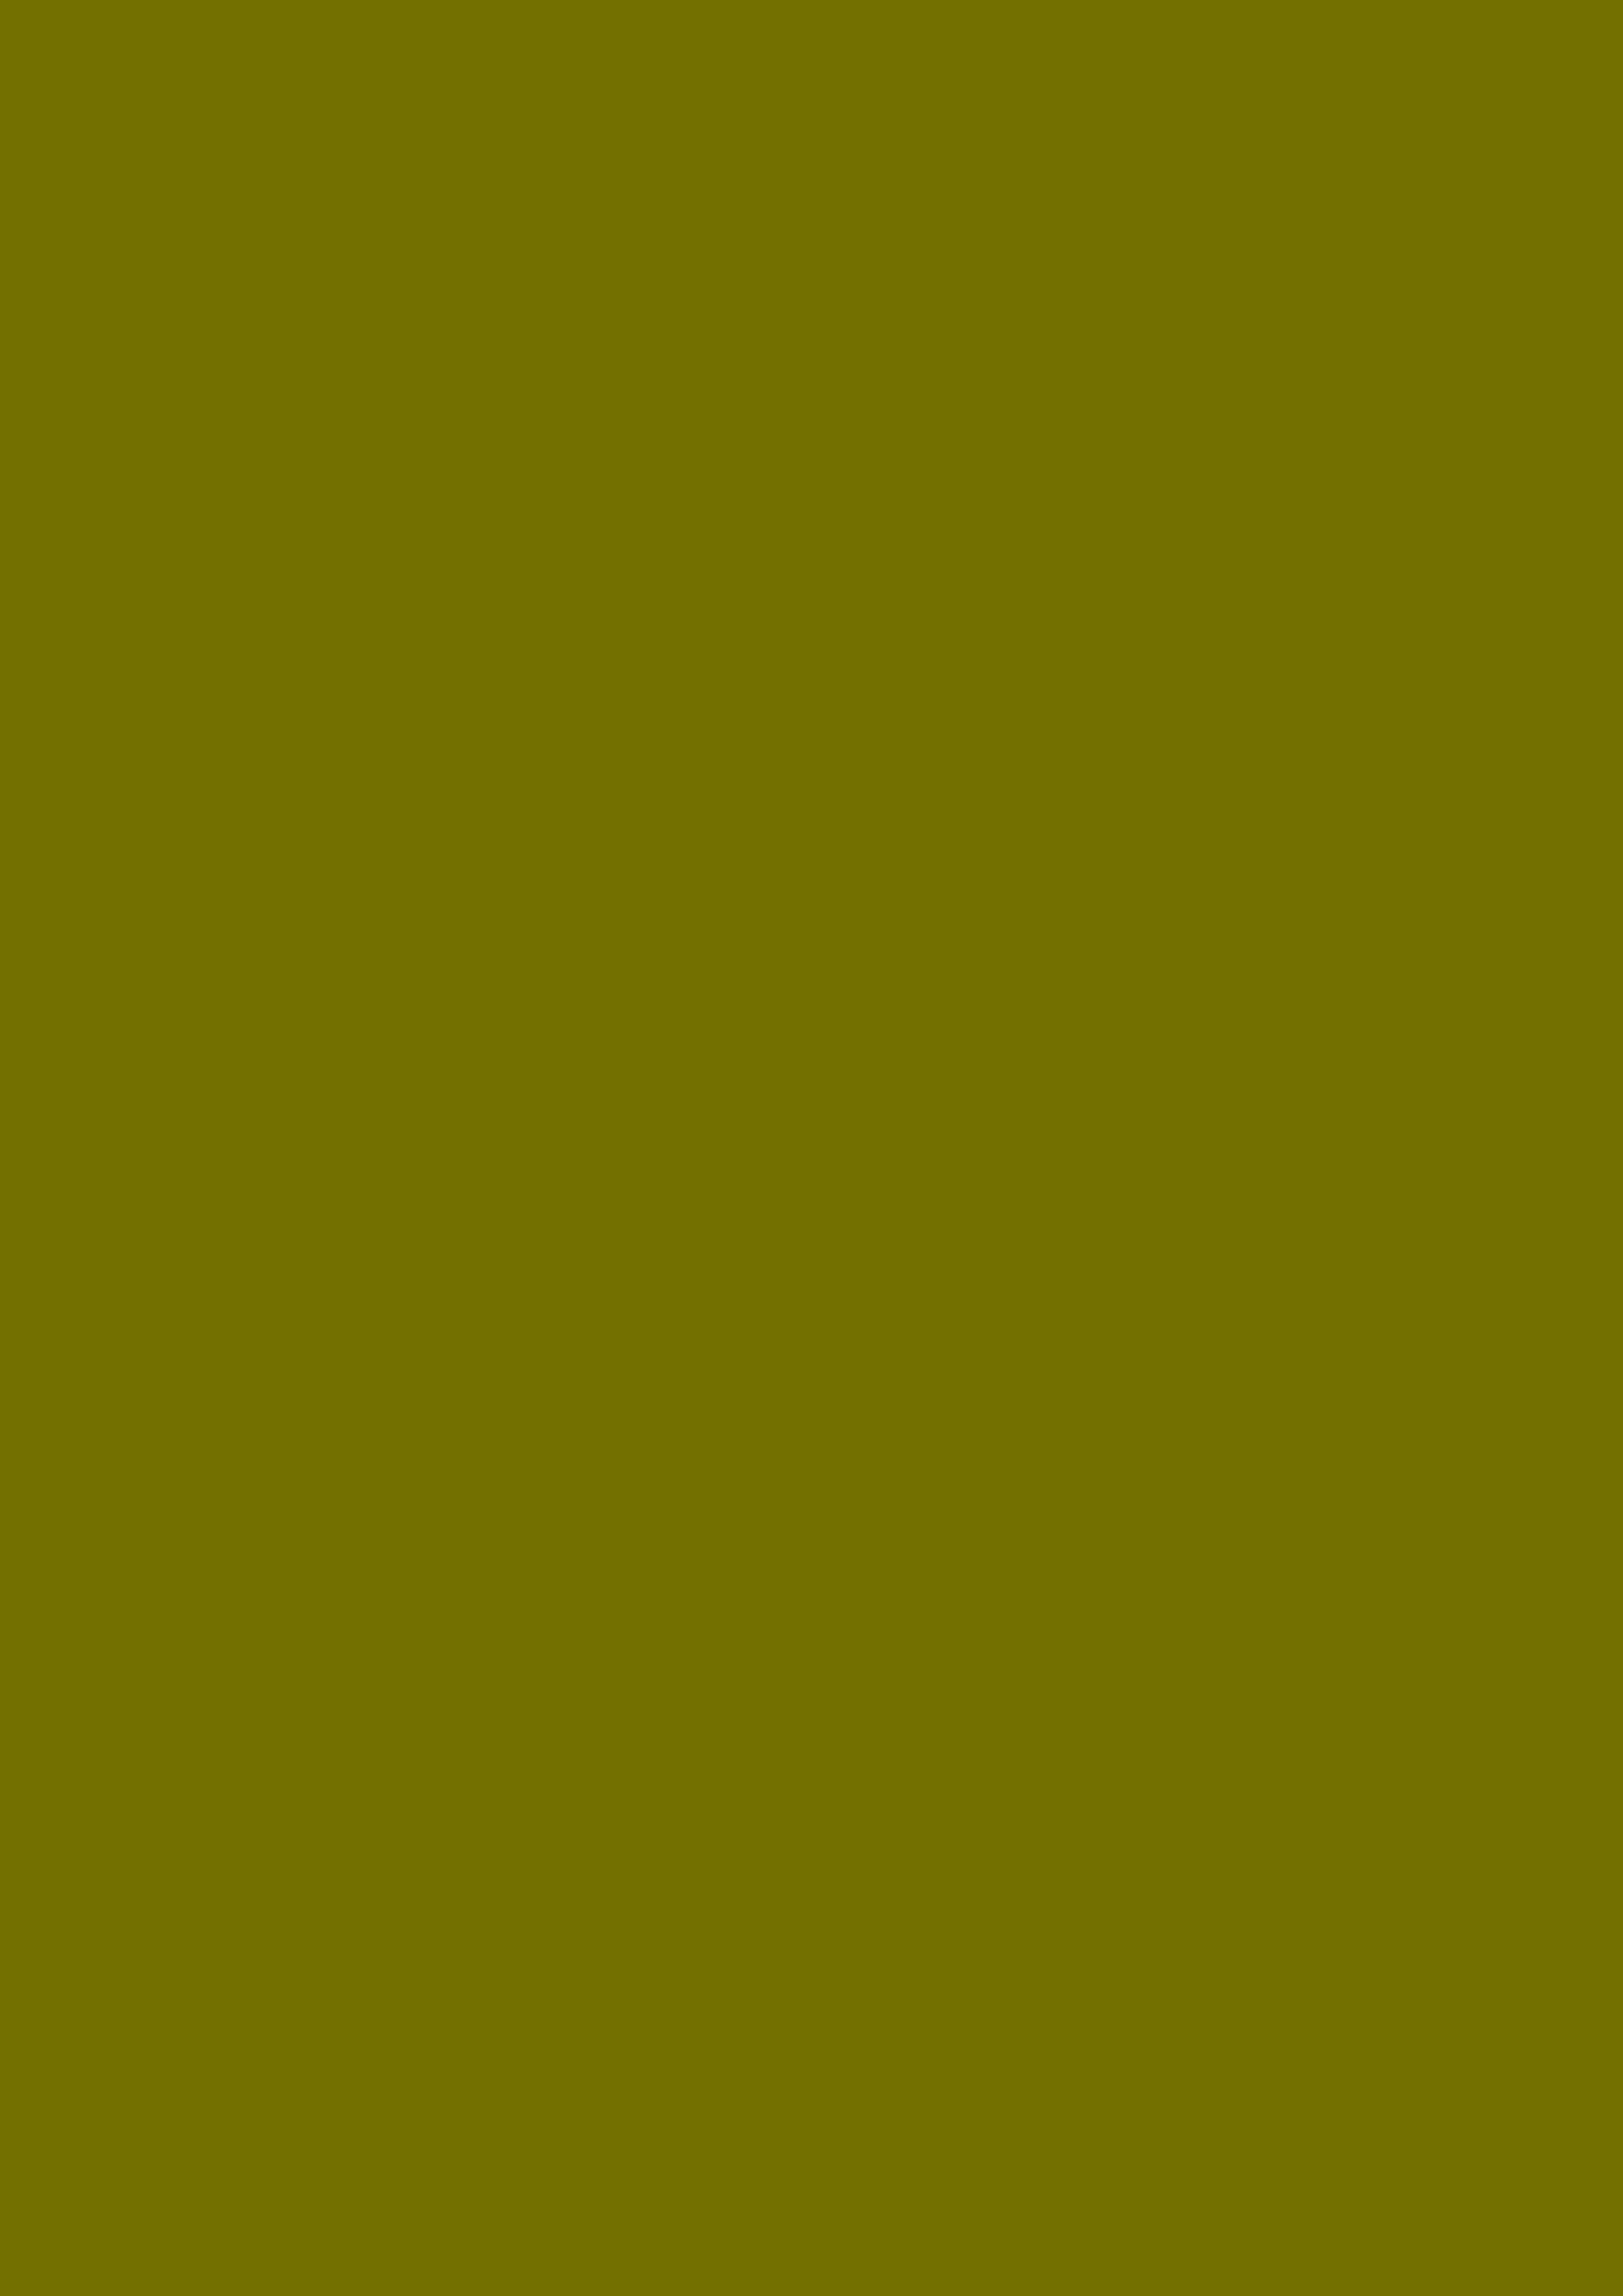 2480x3508 Bronze Yellow Solid Color Background